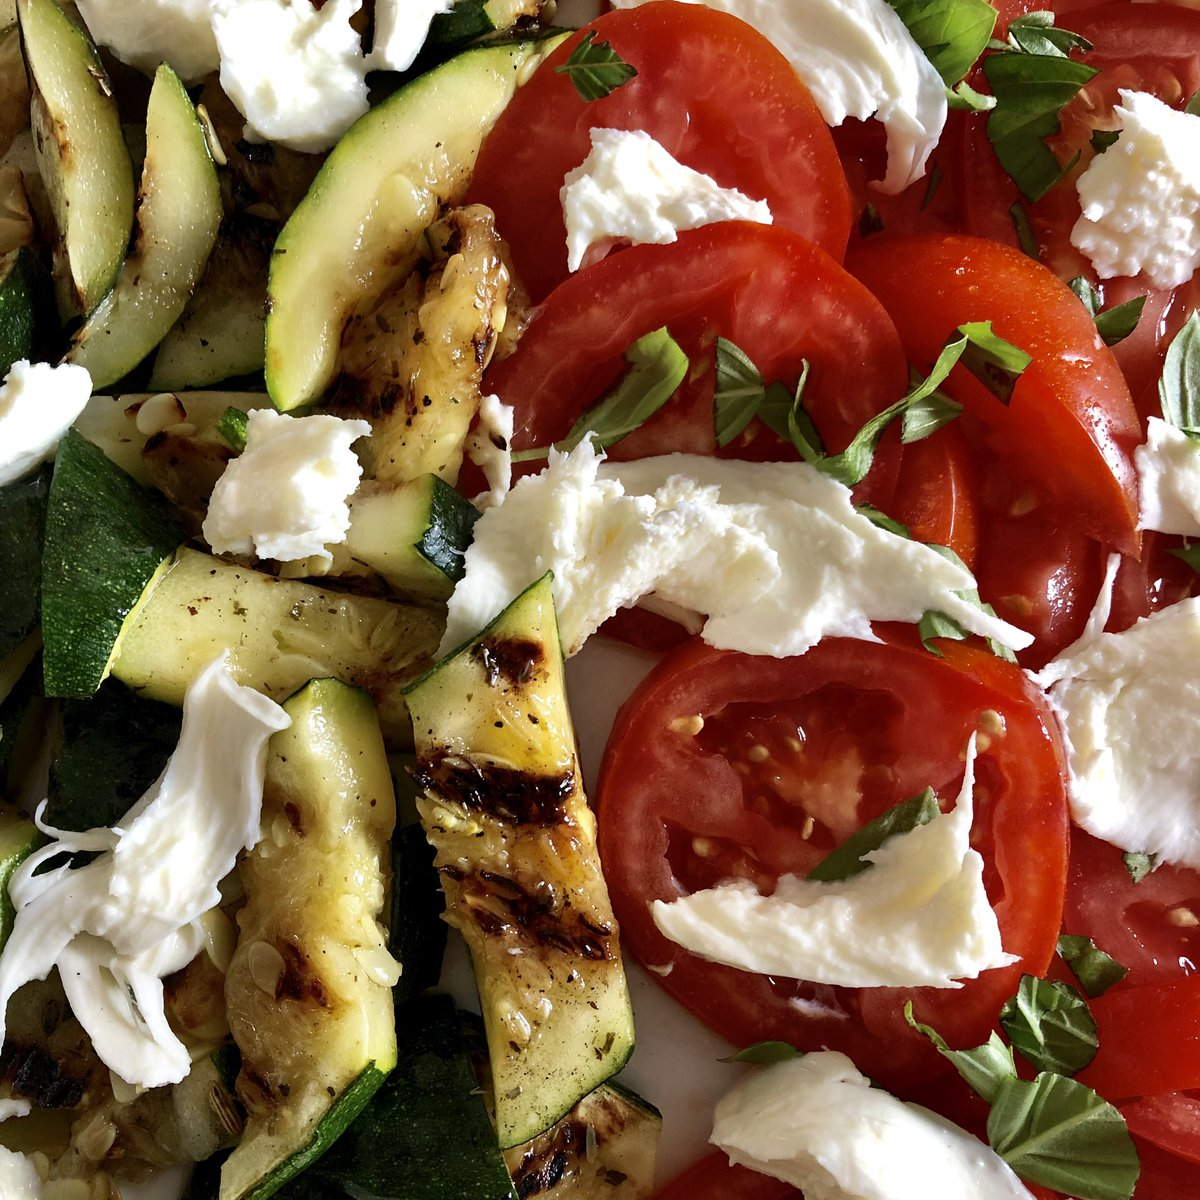 Today in Julie's adventures in #vegetarian cooking: tomato, mozzarella and grilled courgette salad. <br>http://pic.twitter.com/uUtnHizZ84